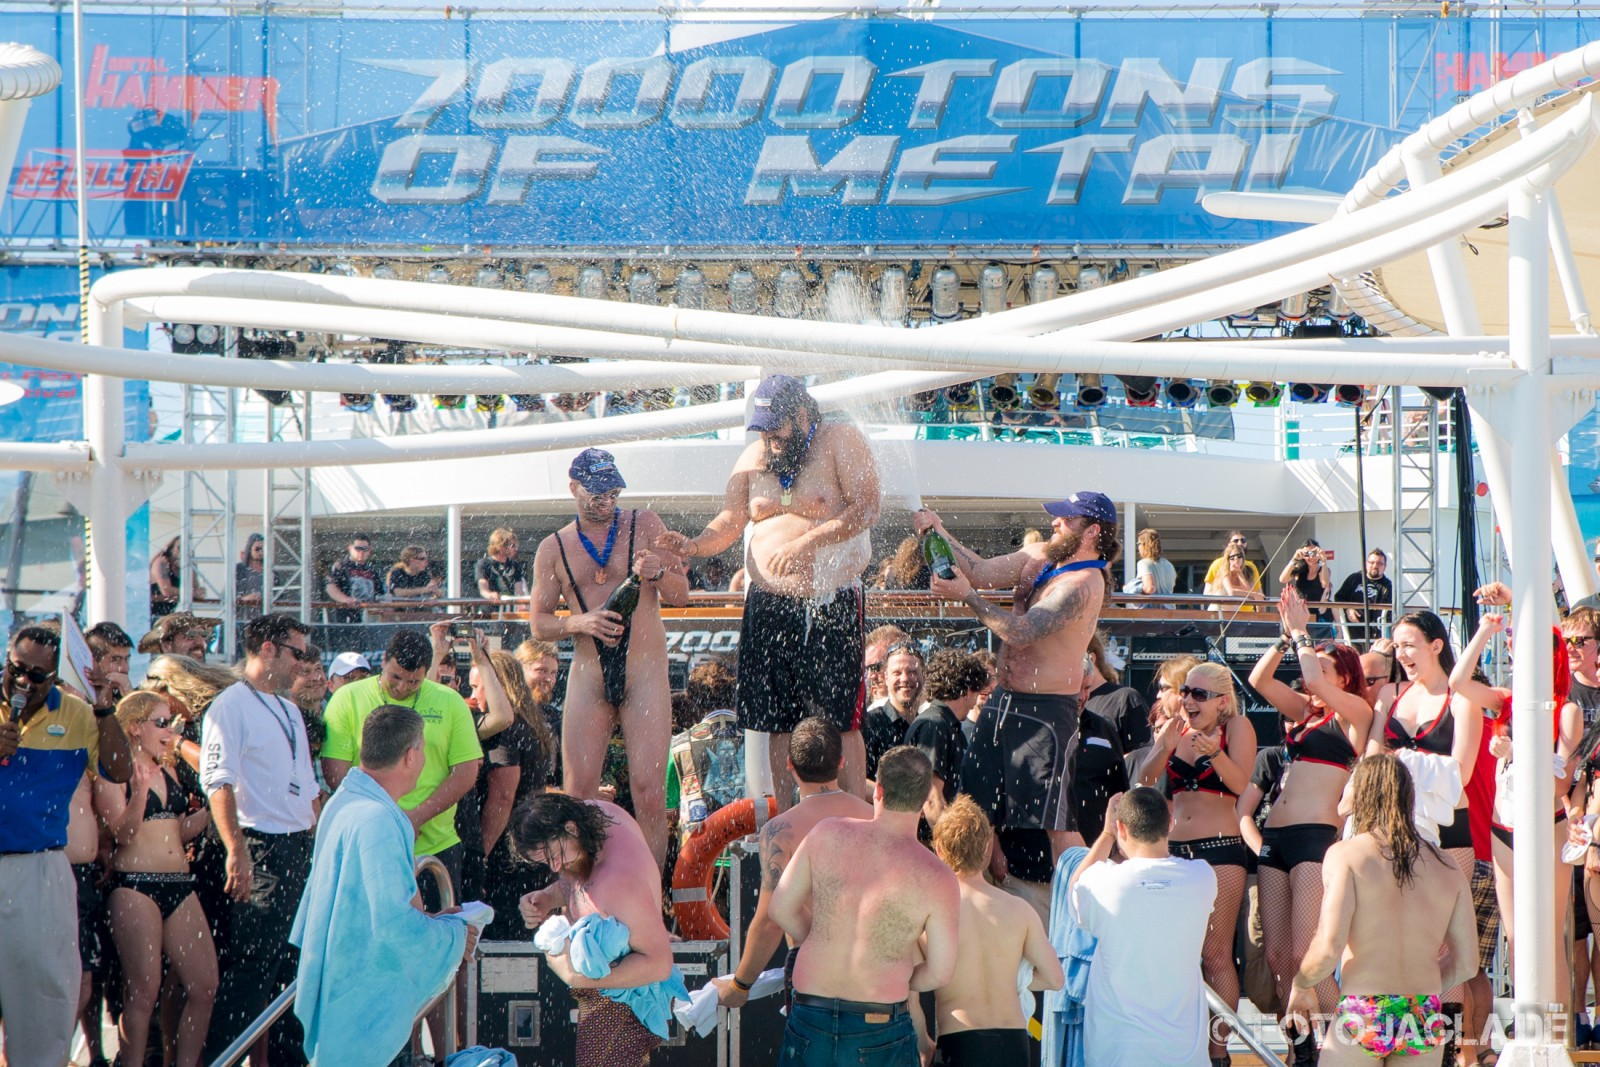 70000 Tons of Metal 2013 ::. Winner of Belly Flop Contest ::. http://www.foto-jagla.de